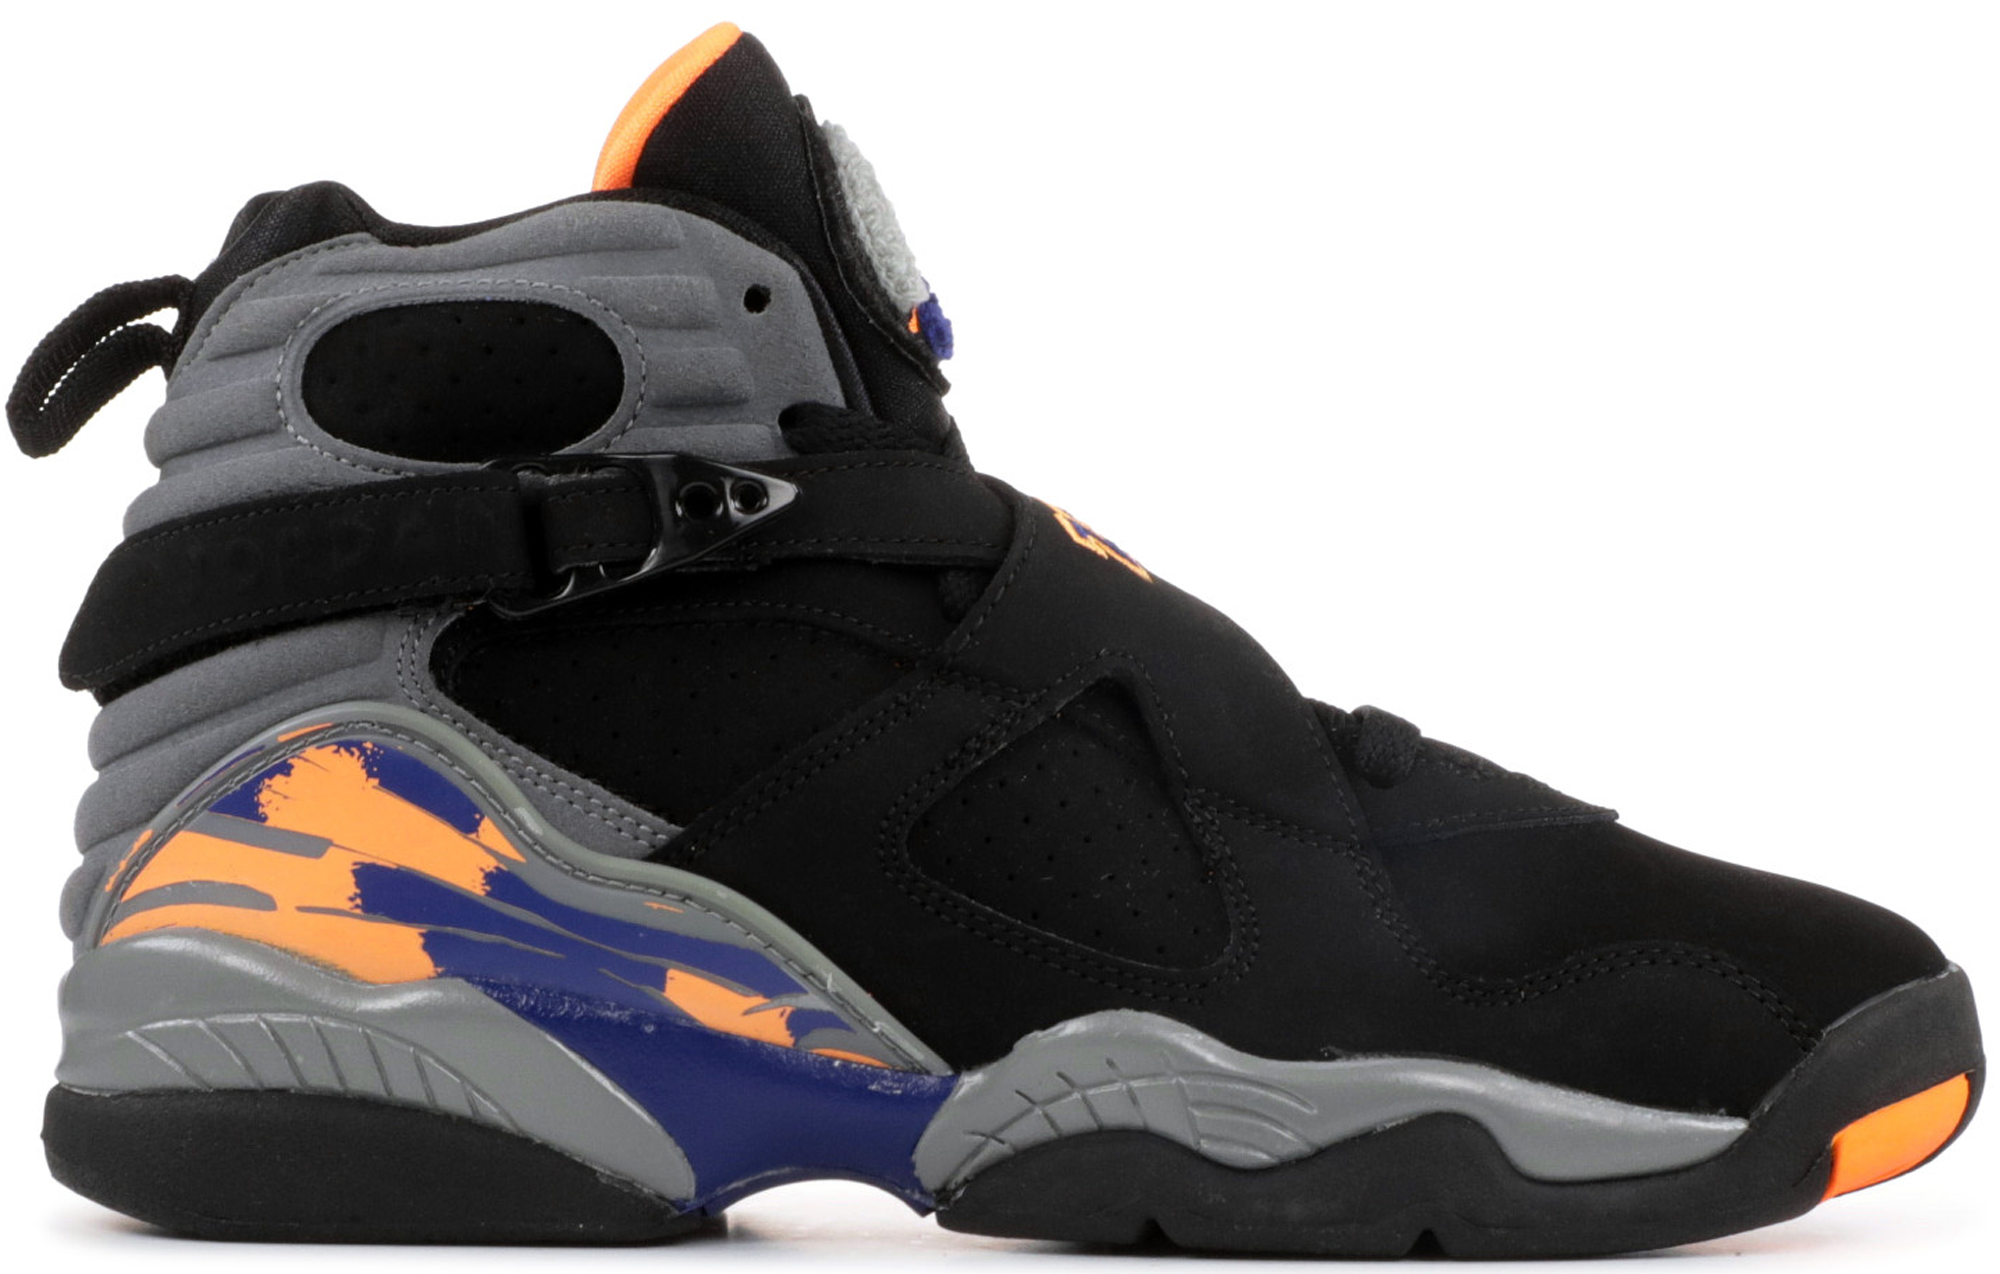 save off 89b1a 20b24 ... where can i buy air jordan 8 phoenix suns gs f4de9 4c1f5